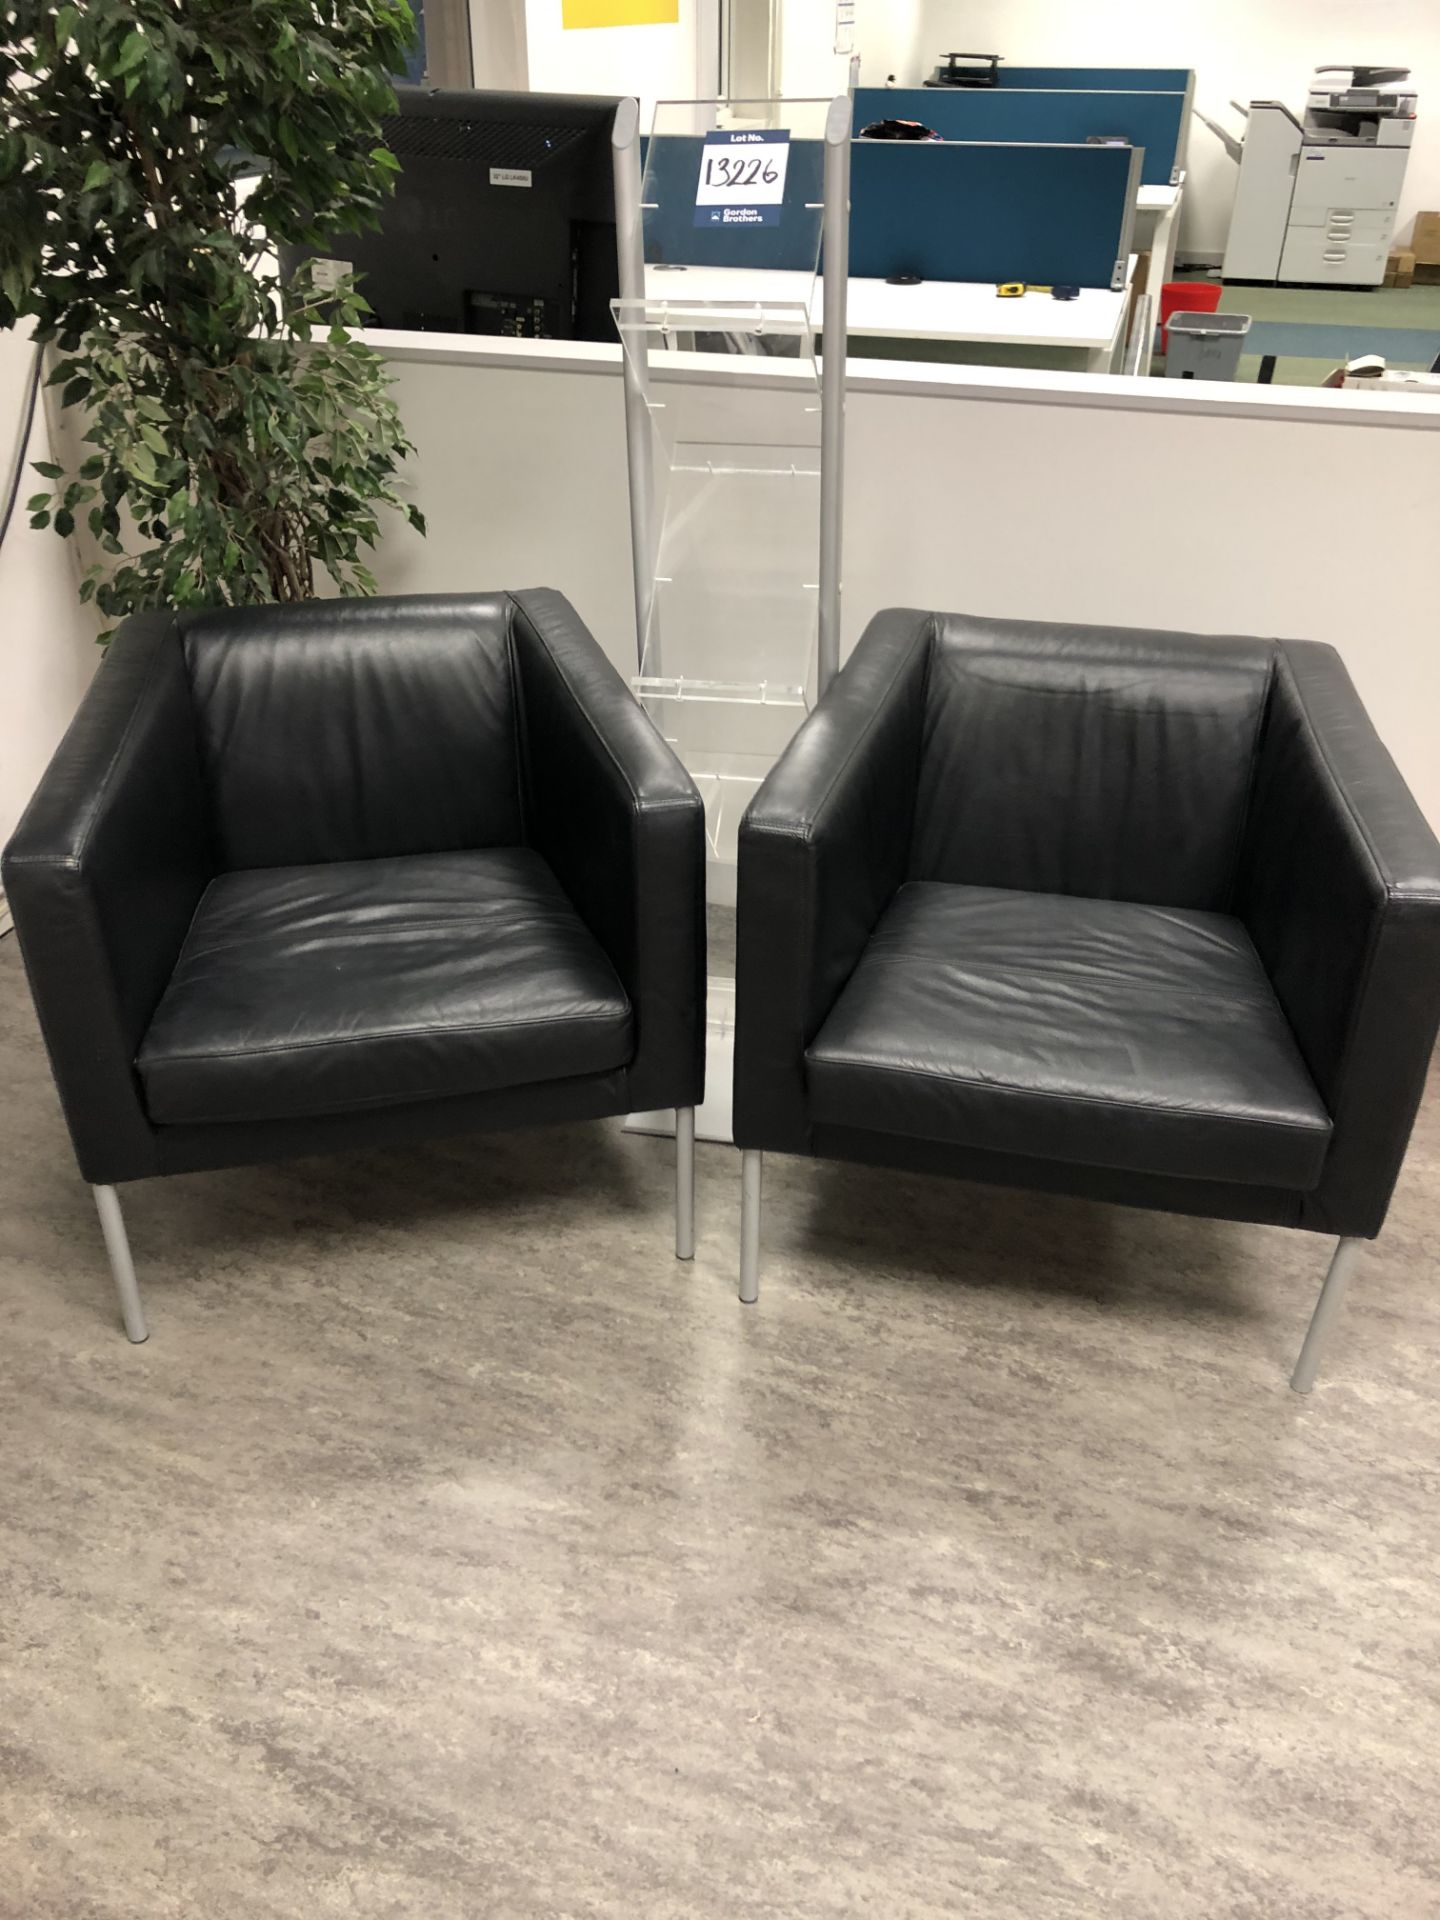 2x No. leather cloth upholstered reception chairs